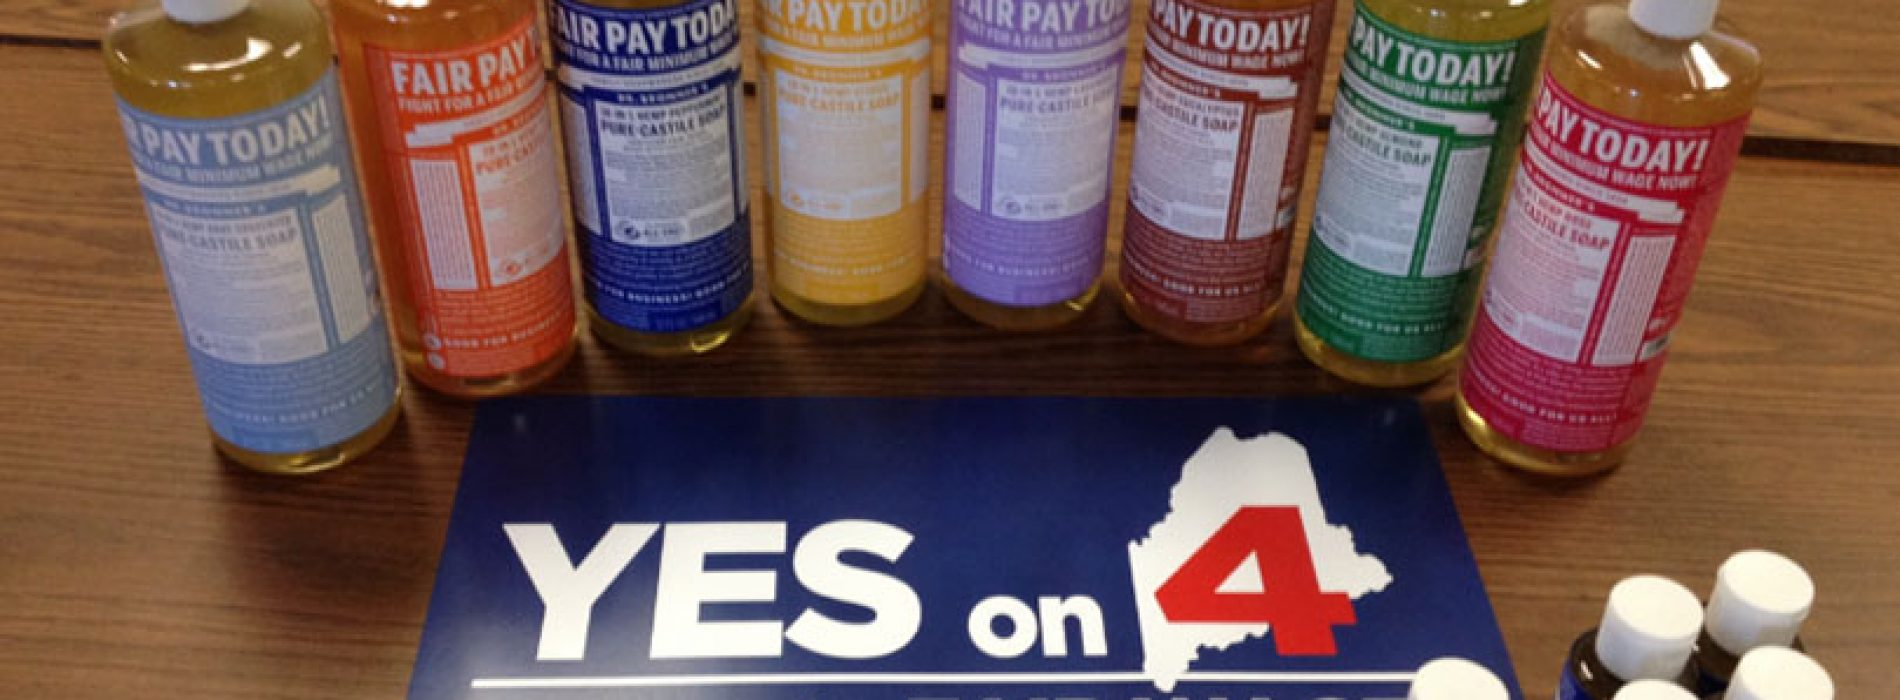 Dr. Bronner's soap changes label to support Maine minimum wage referendum